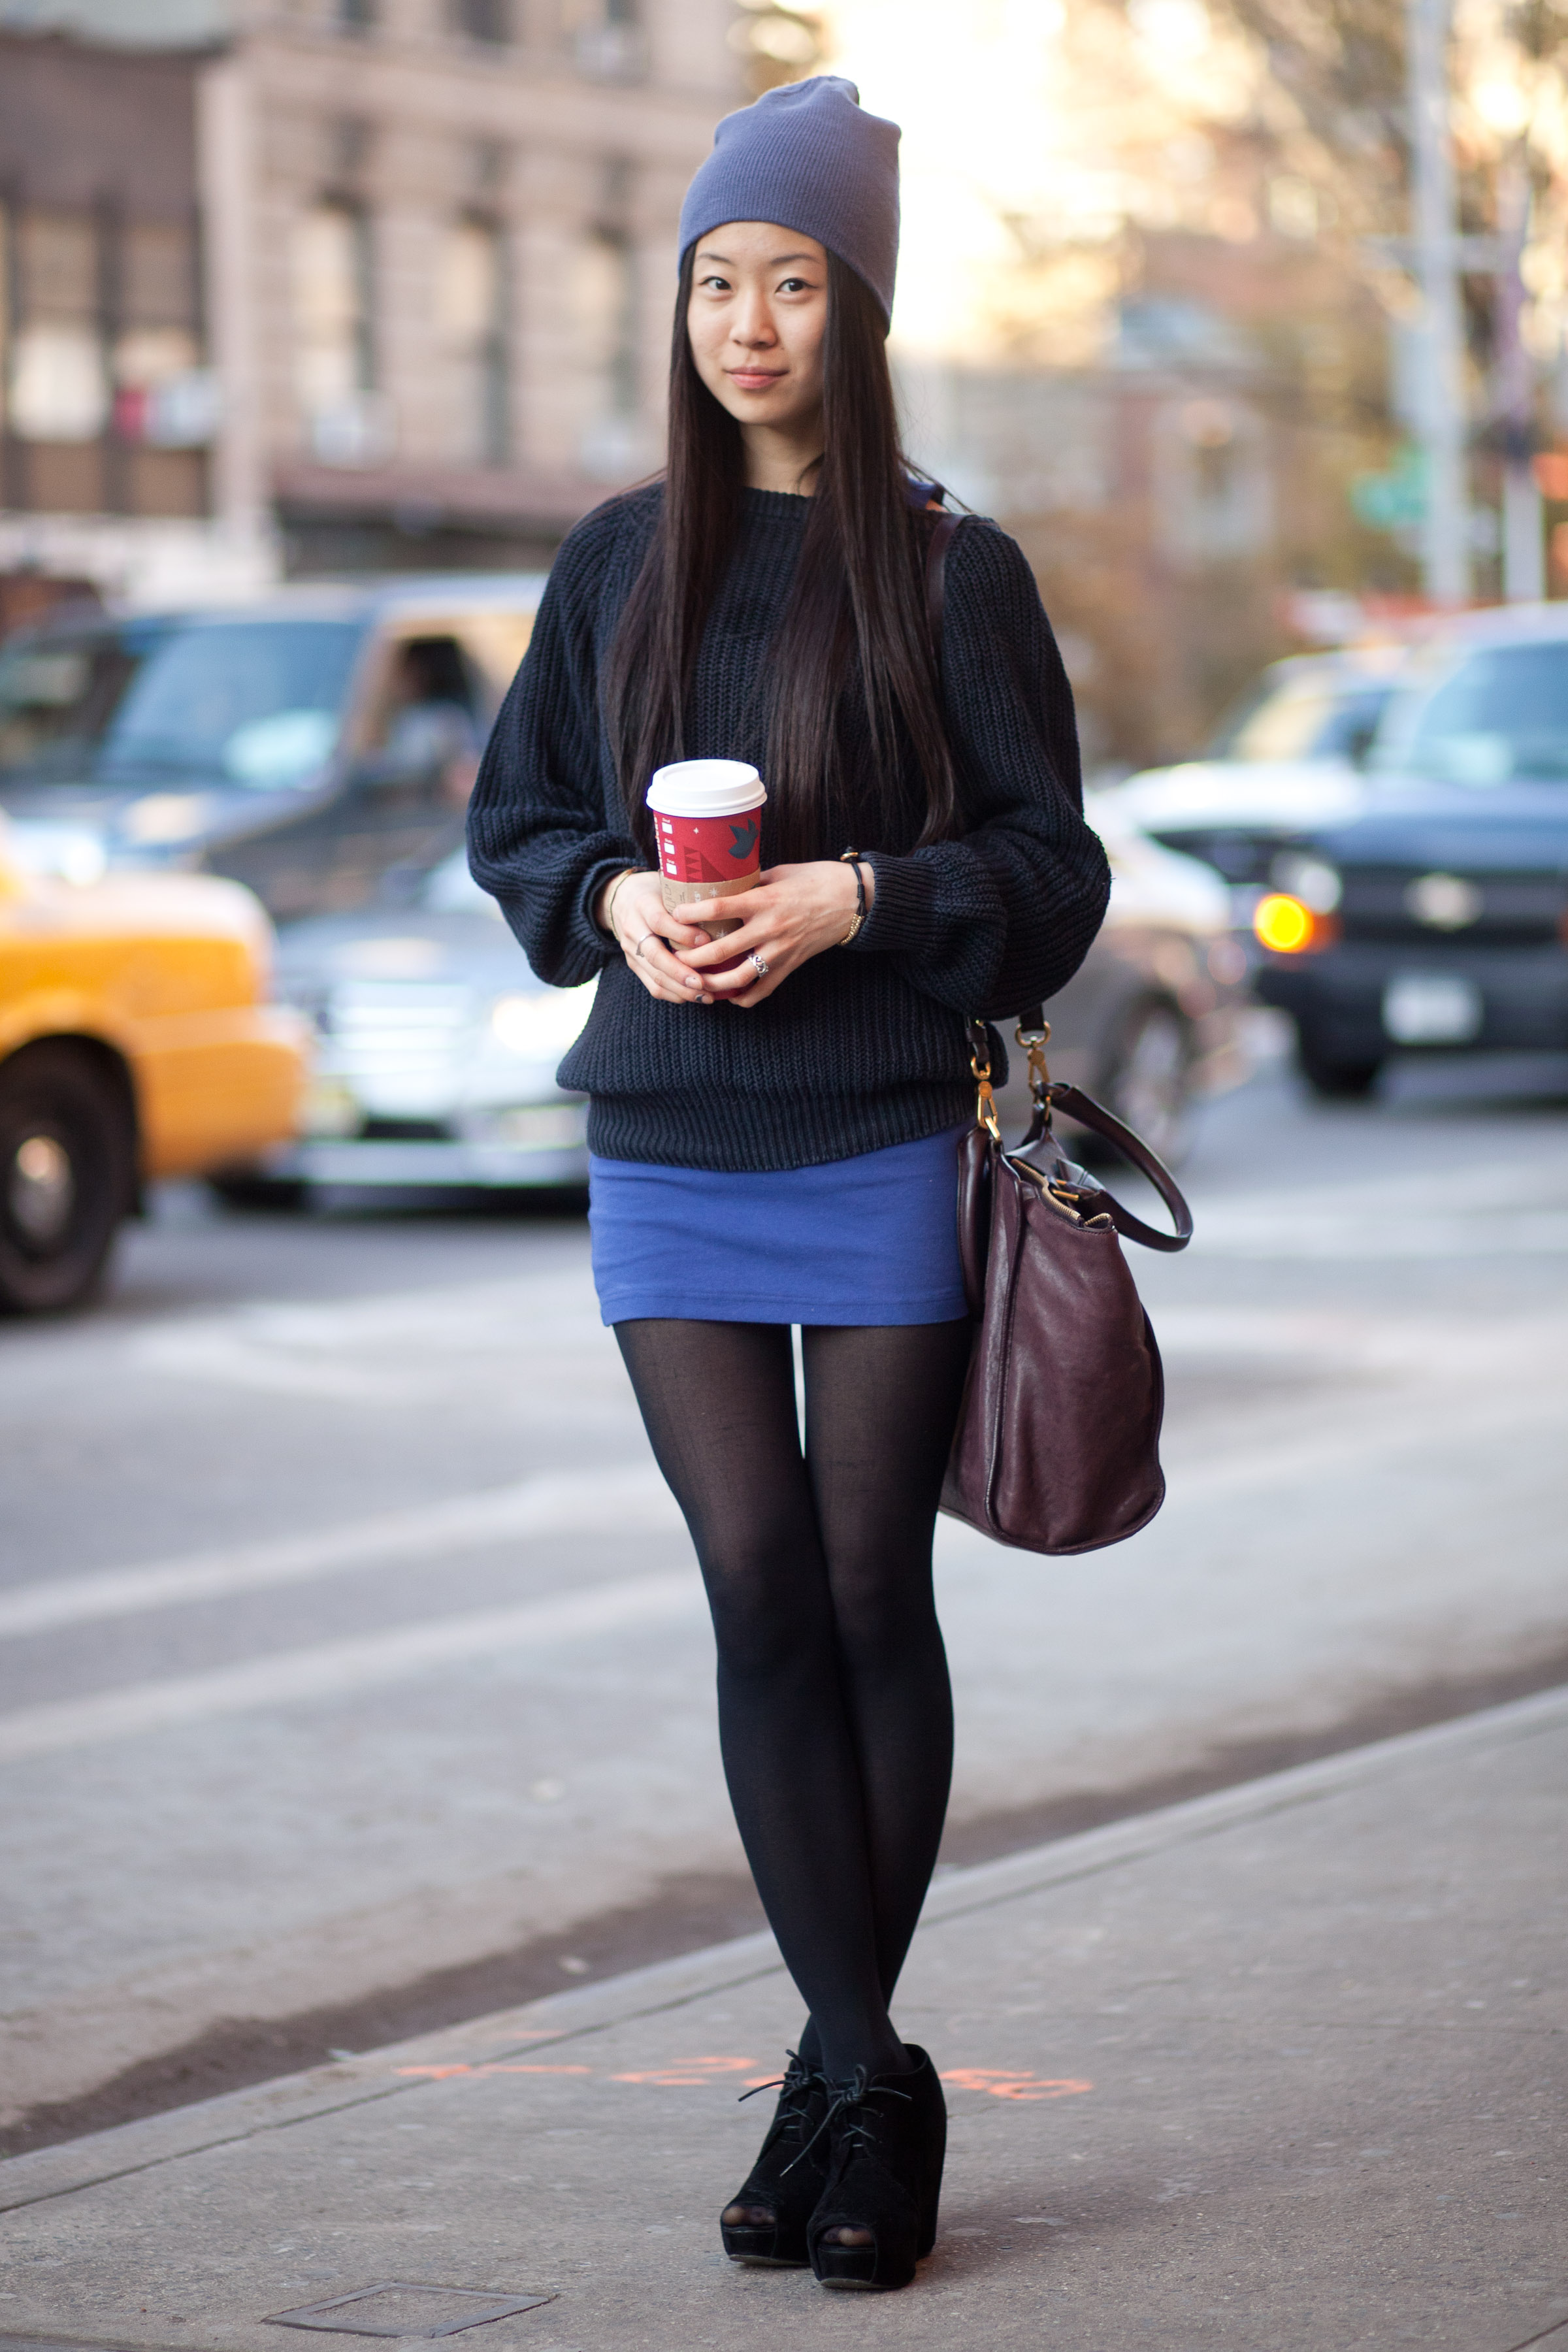 A mini skirt (and tights)